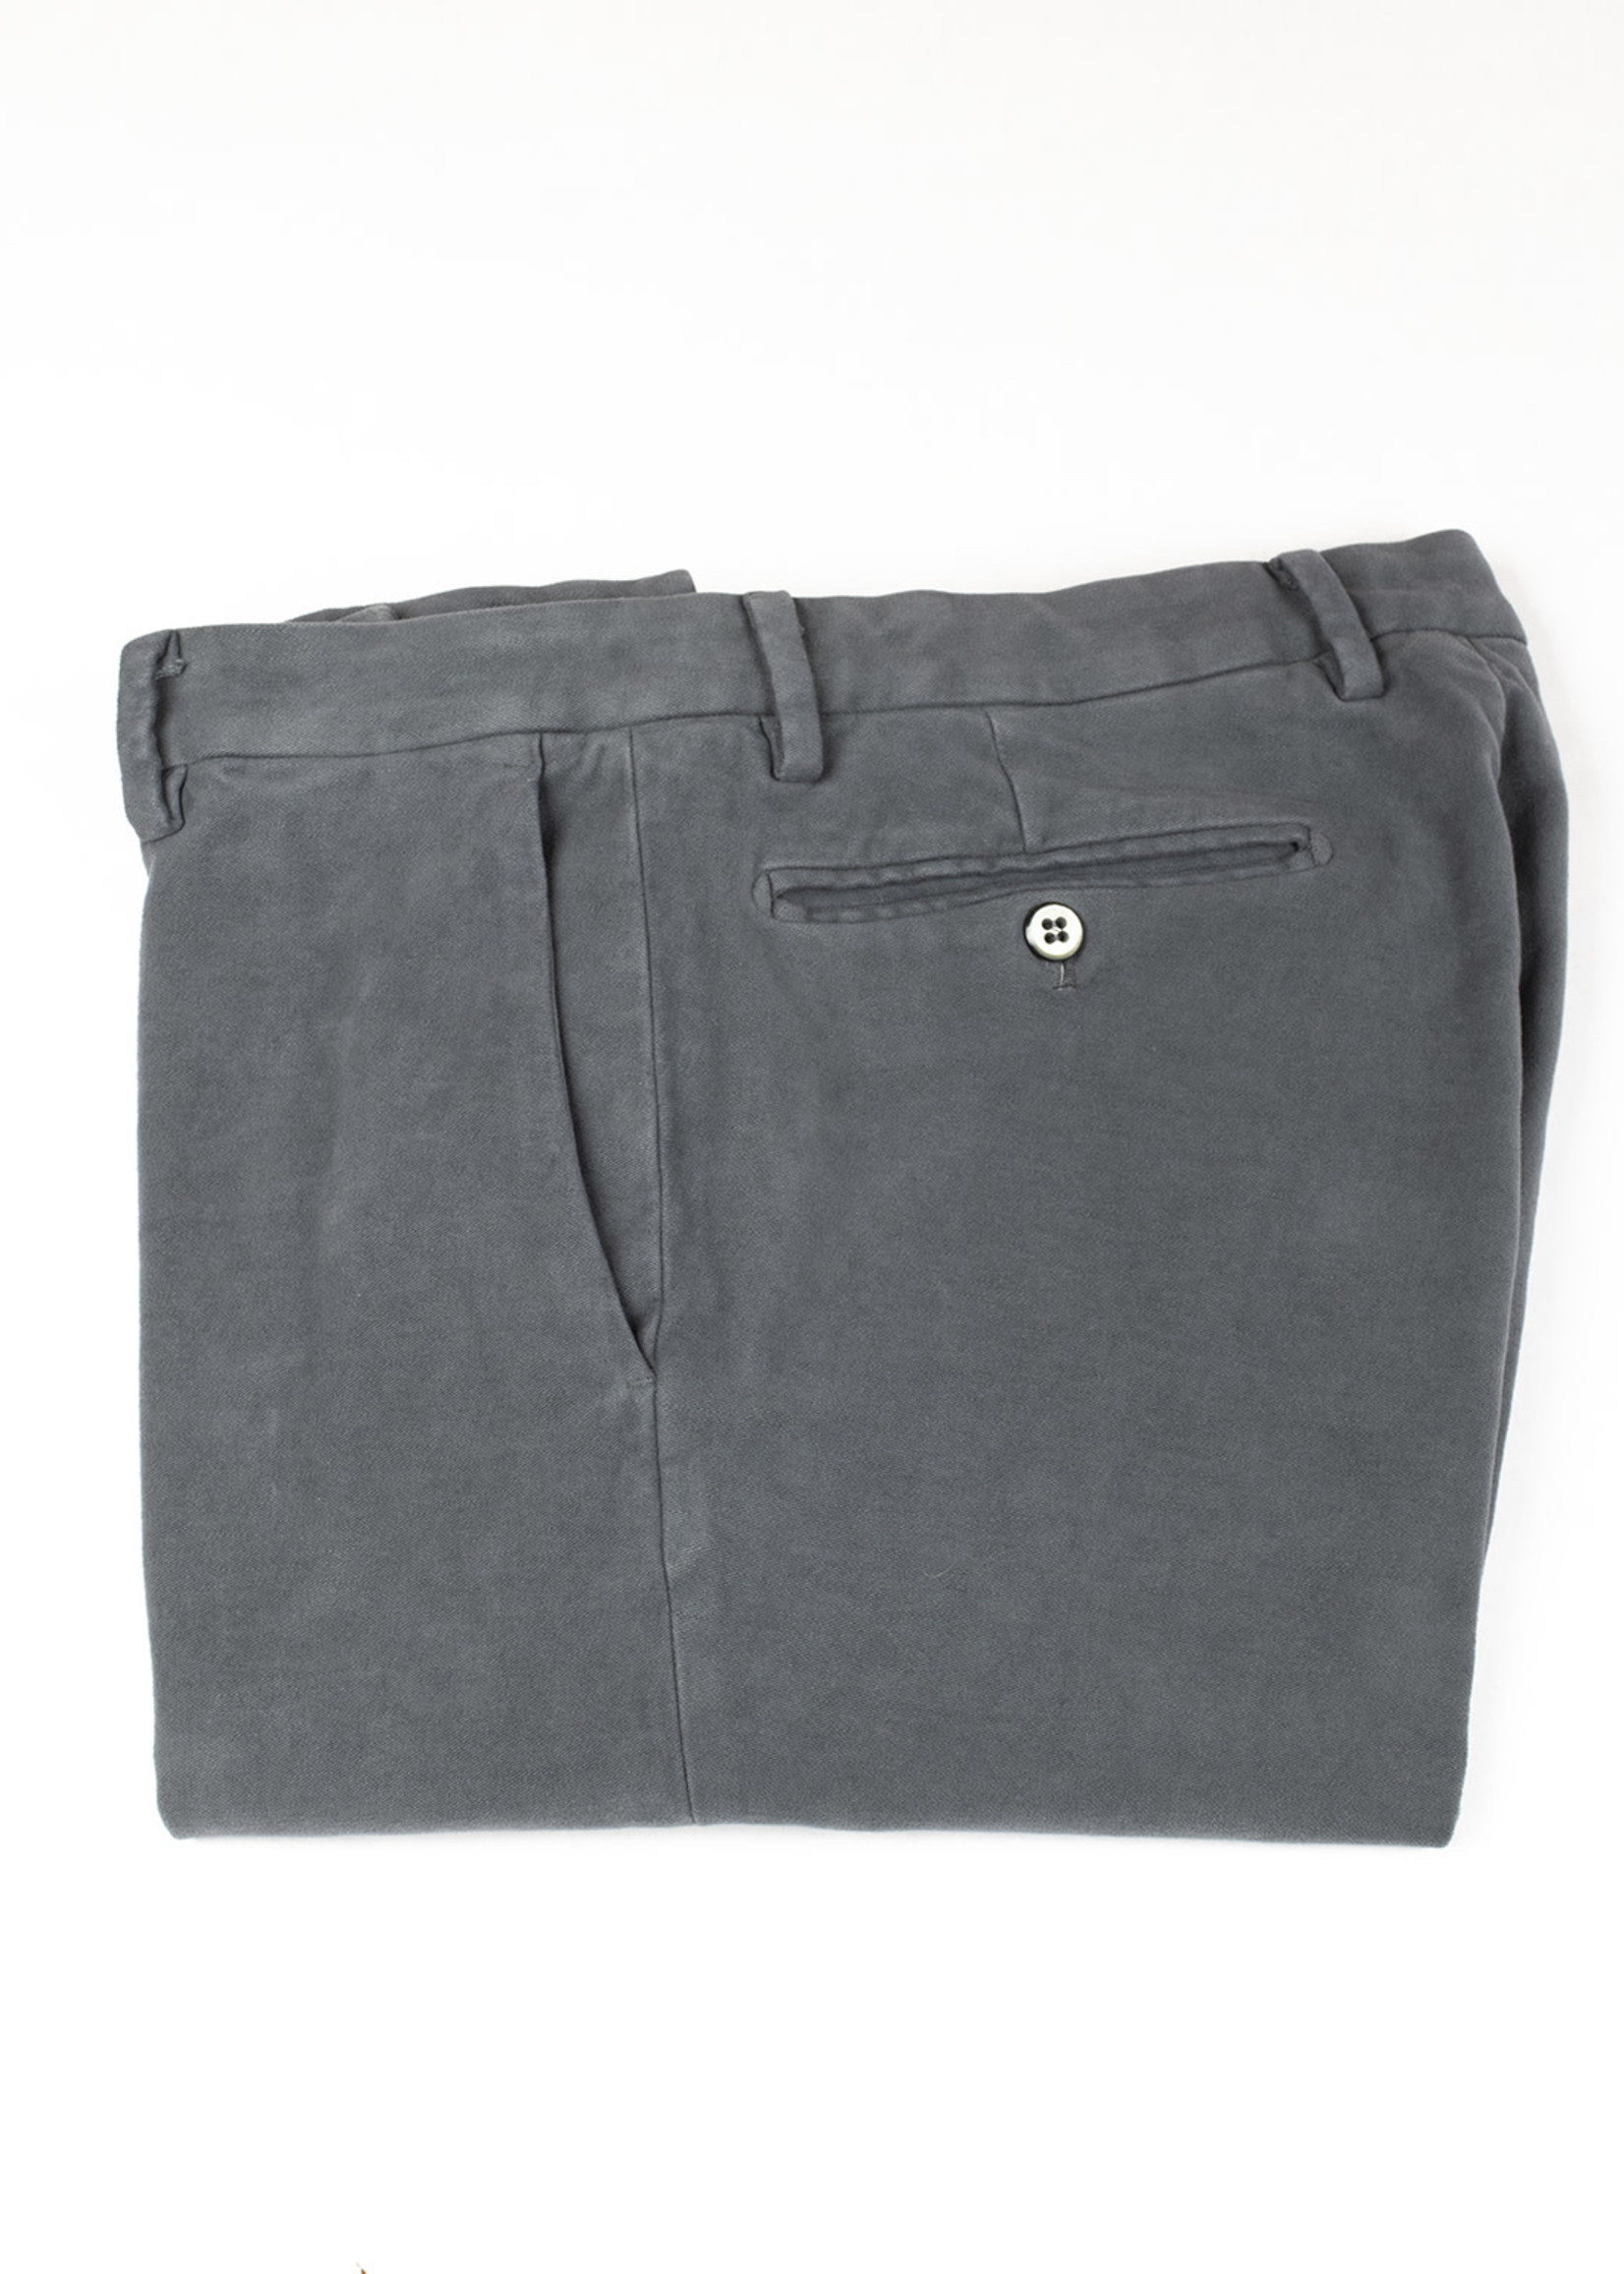 New York Gray Brushed Cotton Twill Trouser by Mason's